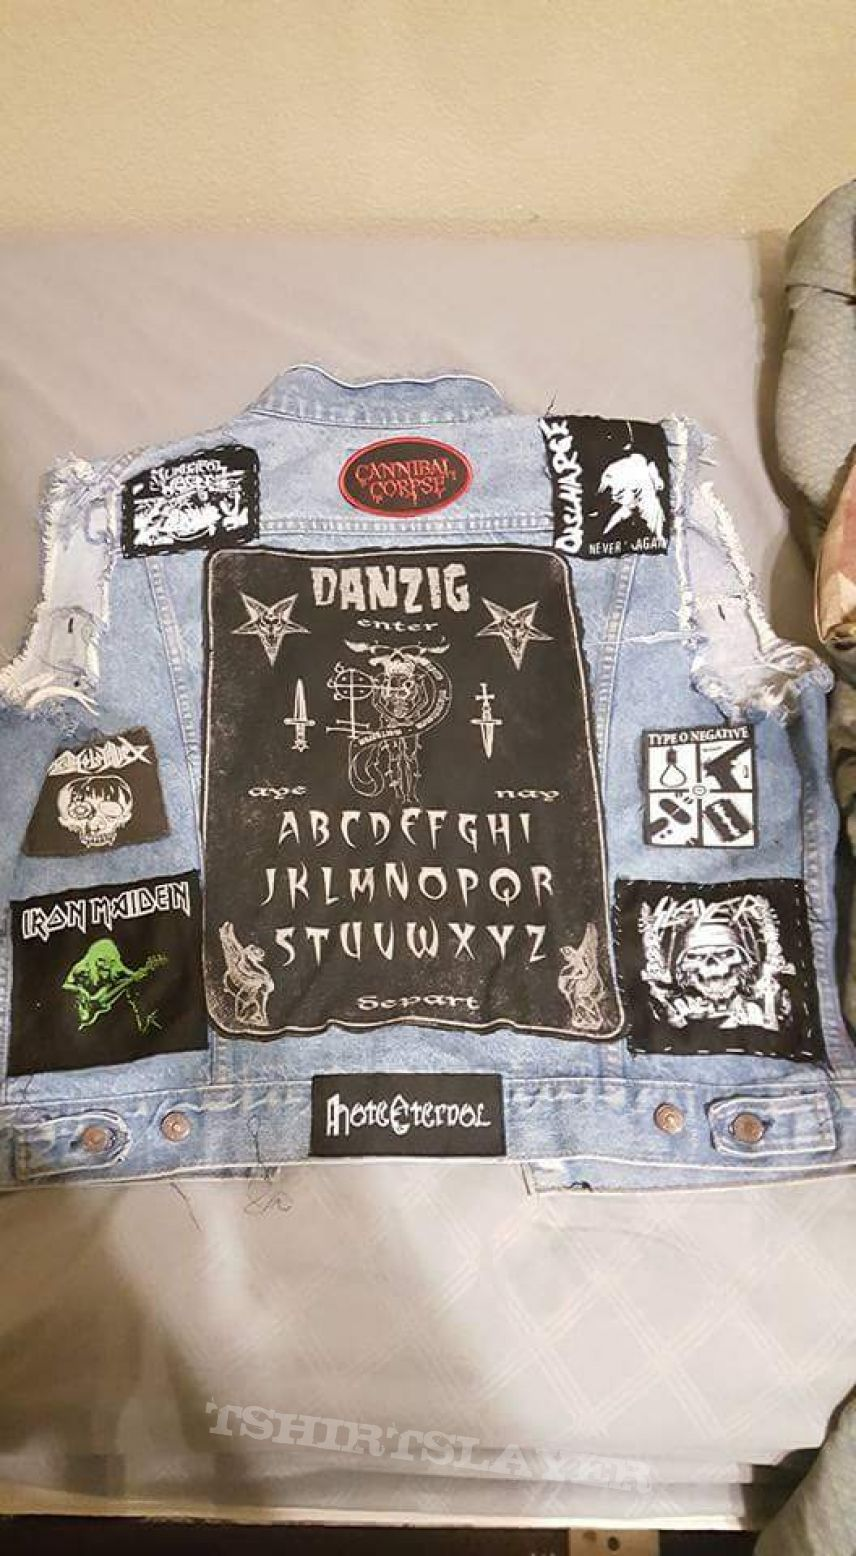 Pictures of my old vest